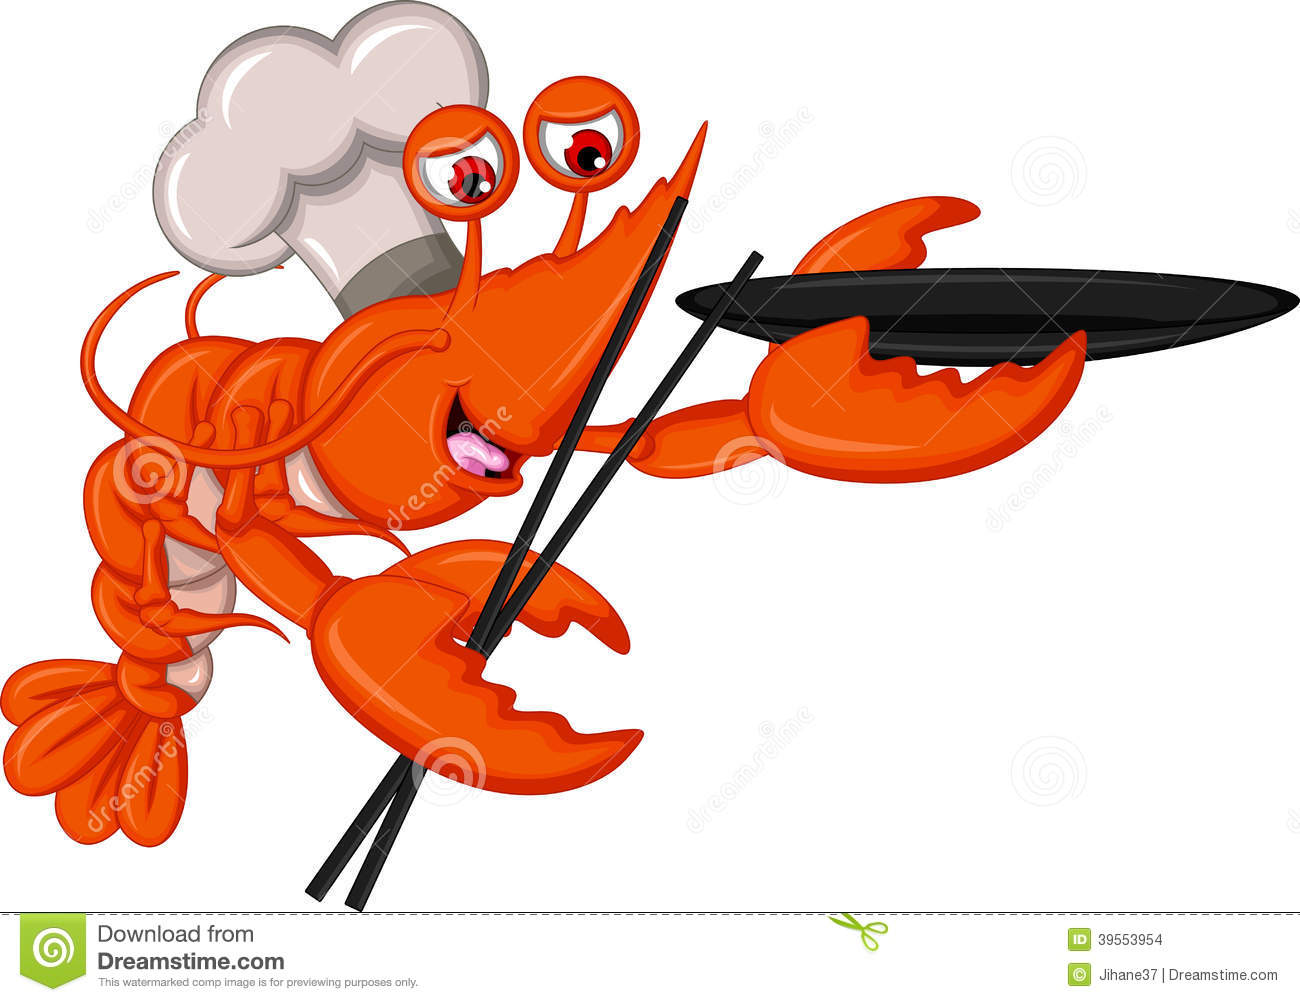 Cartoon Chef Lobster With Chopsticks And Bowl Stock Illustration - Image: 39553954